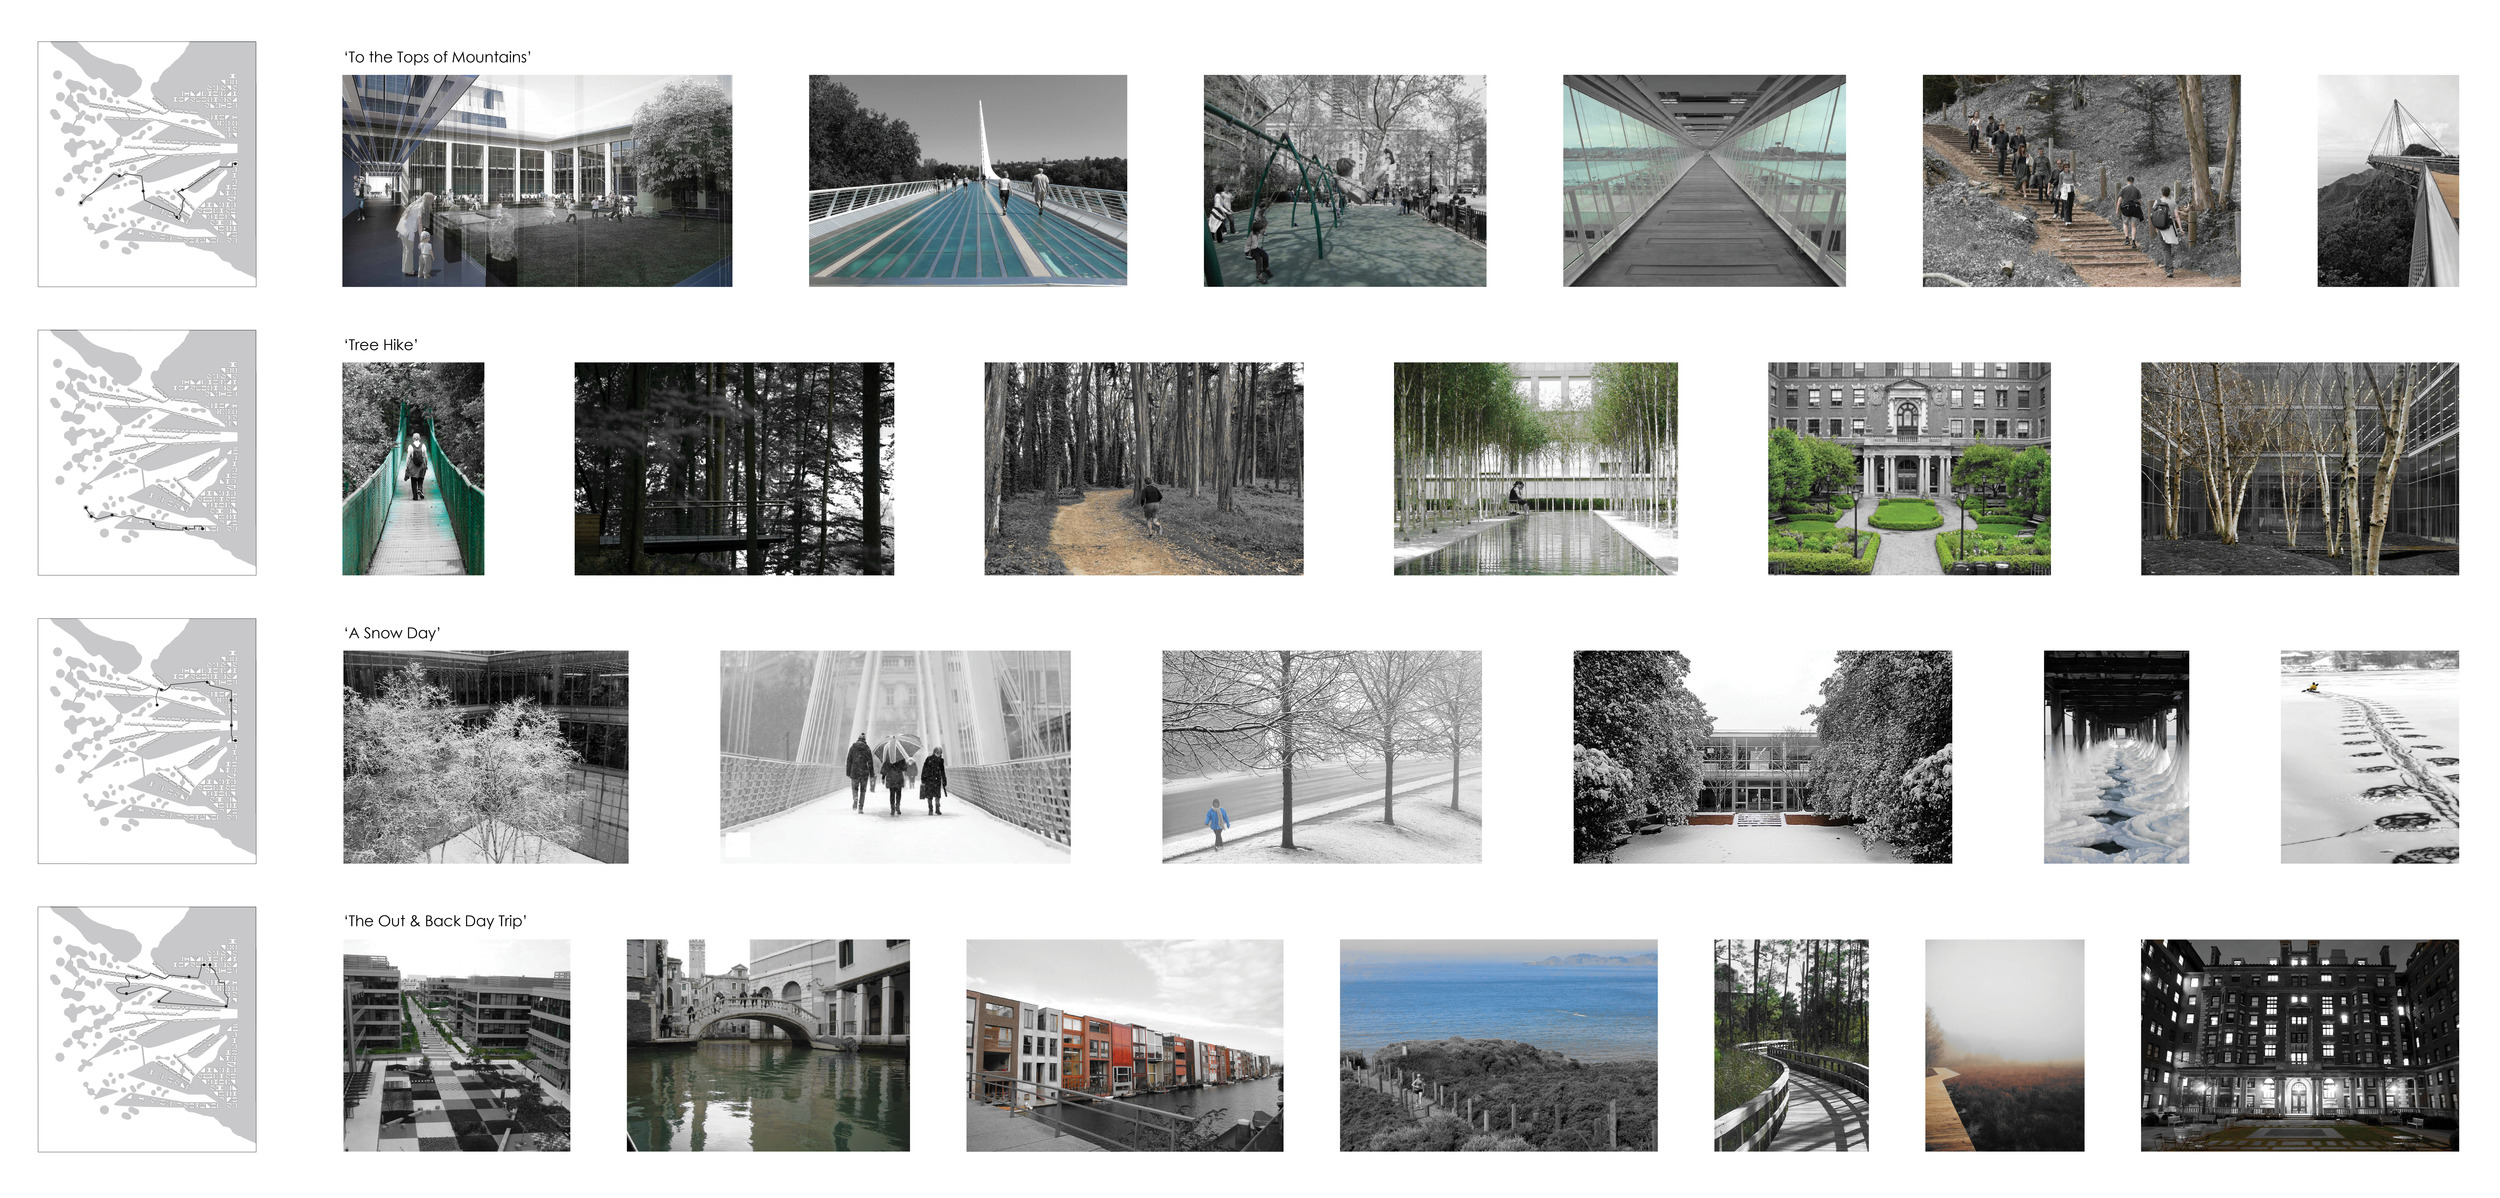 Four series of 'walk throughs' were designed to describe the transition between the urban fabric, the peninsulas, and the barrier islands. Each walk focuses on a different aspect of the project: 'To the Tops of Mountains' begins in the urban fabric takes you across multiple bridges and to the top of a barrier island; 'Tree Hike' follows a path inward from the barrier islands to a central courtyard of one building; 'A Snow Day' looks at the variety of activities available; and finally 'The Out & Back Day Trip' follows the supposed path of a family going out for a picnic on a Saturday.